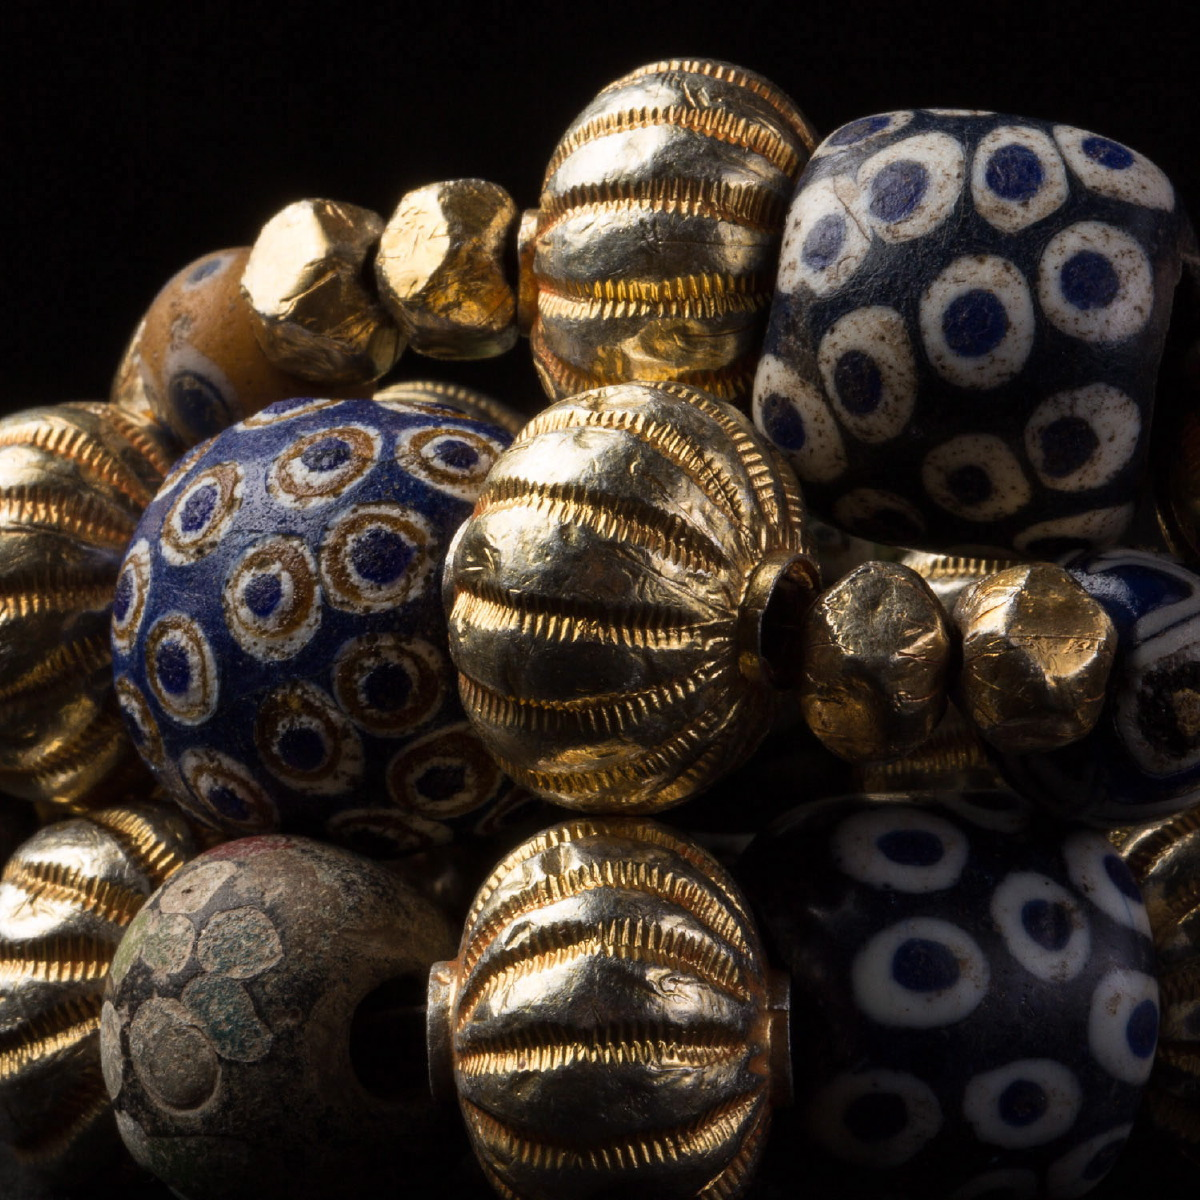 Photo of ancient-glass-pearls-and-gold-pearls-necklace-galerie-golconda